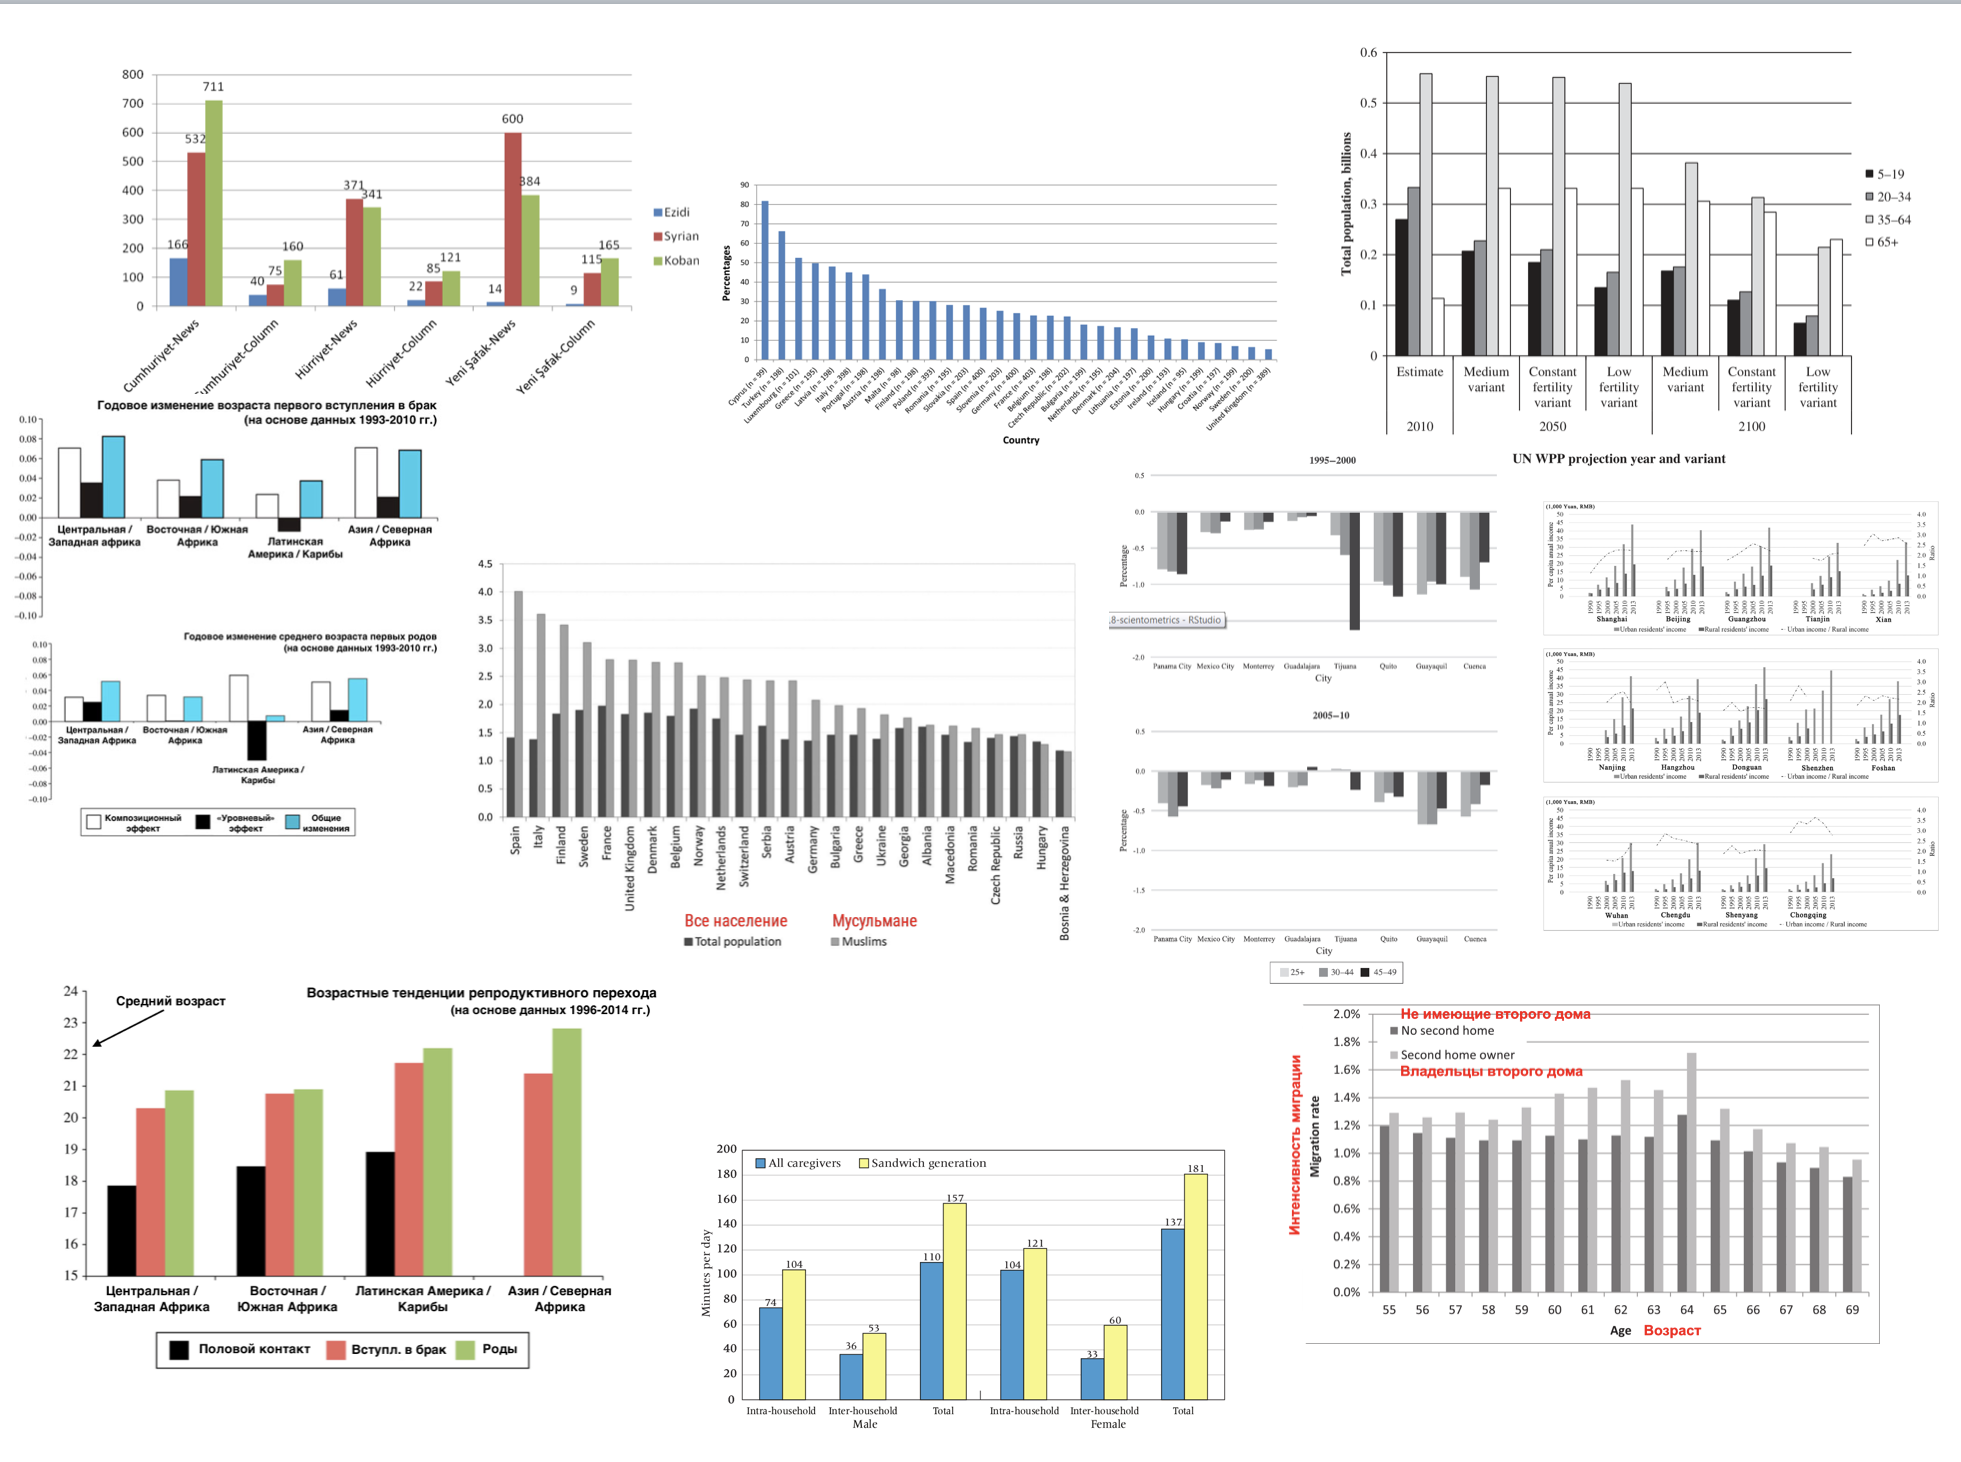 Dotplot – the single most useful yet largely neglected dataviz type